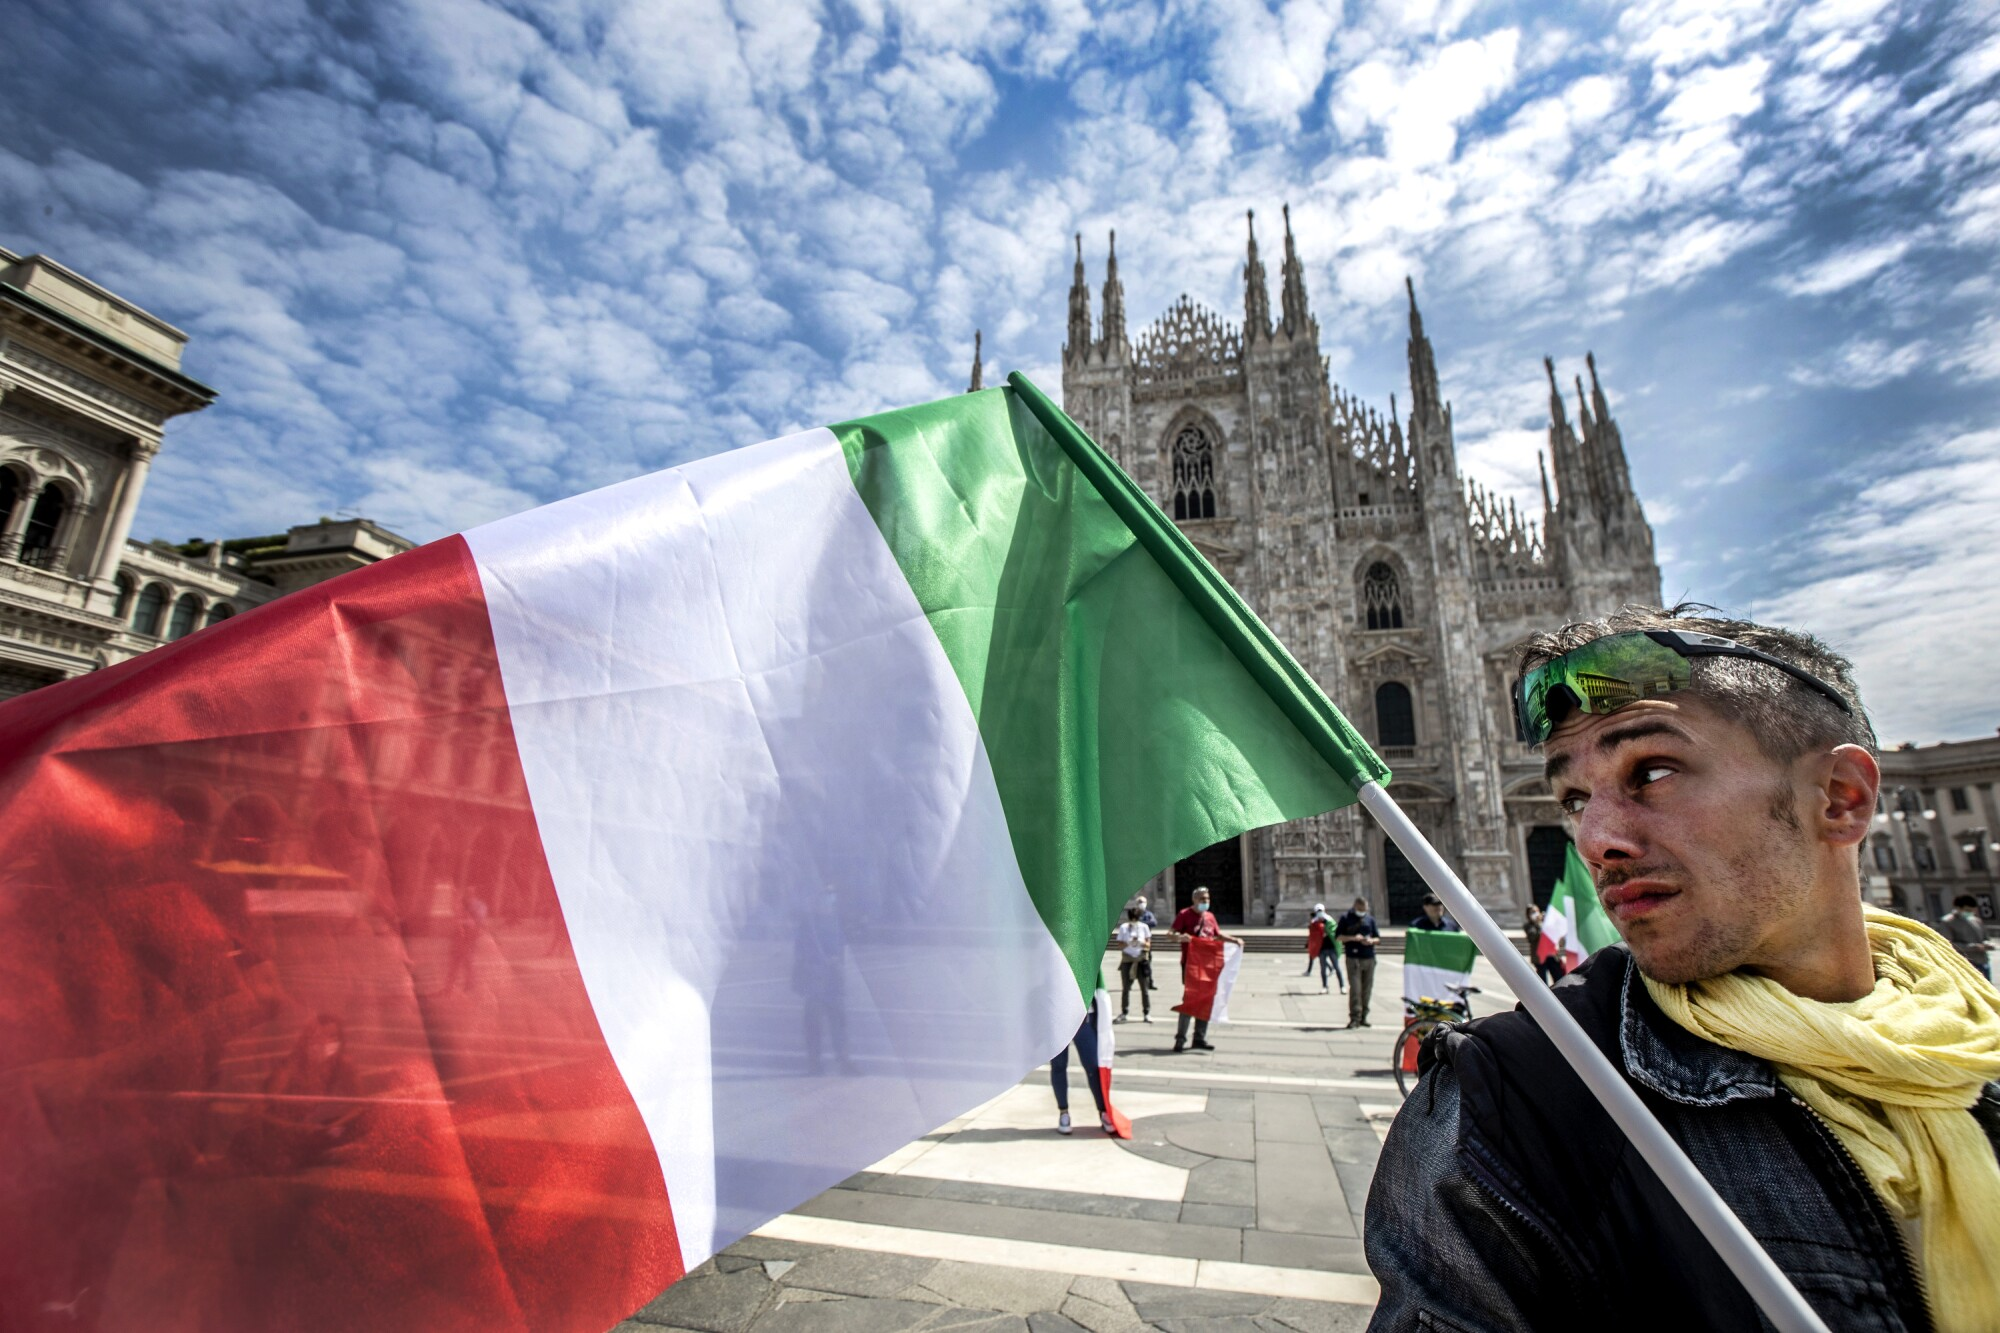 A man holds an Italian flag in front of the Duomo cathedral in Milan on Monday. Italy has begun allowing citizens to return to work and easing restrictions imposed to stem COVID-19 infections.